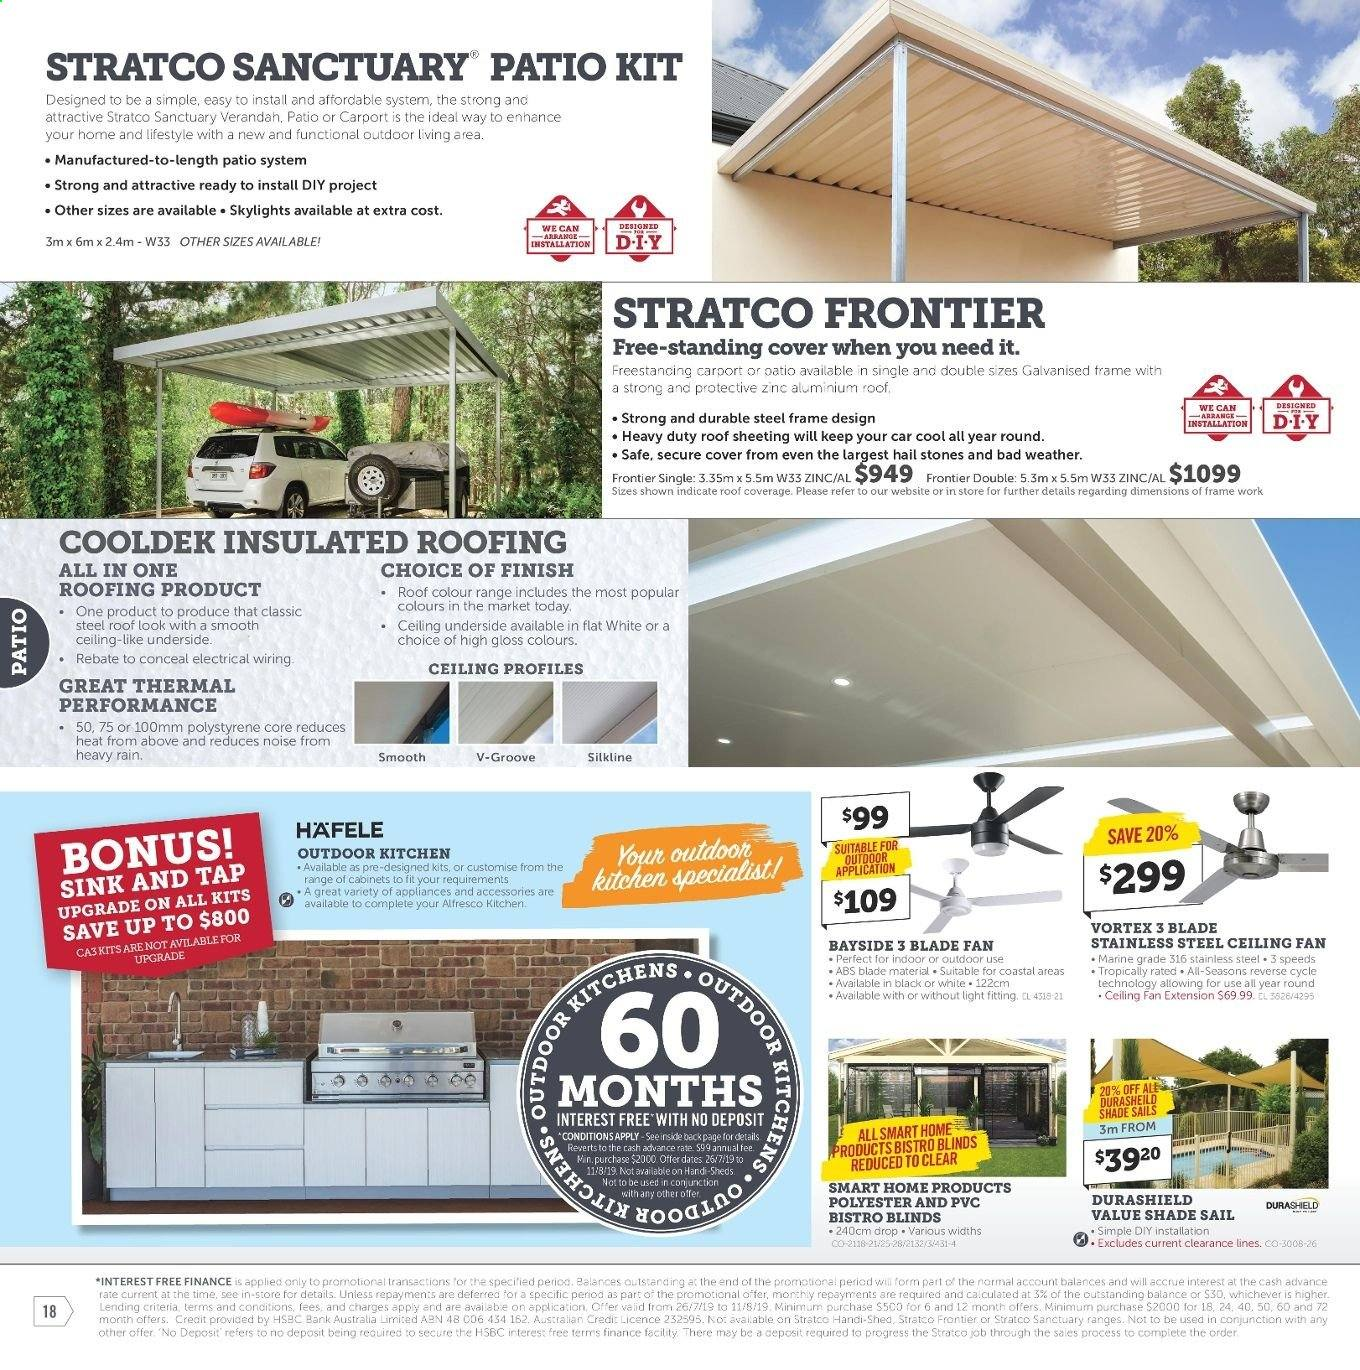 Stratco catalogue and weekly specials 26 7 2019 - 11 8 2019 | Au